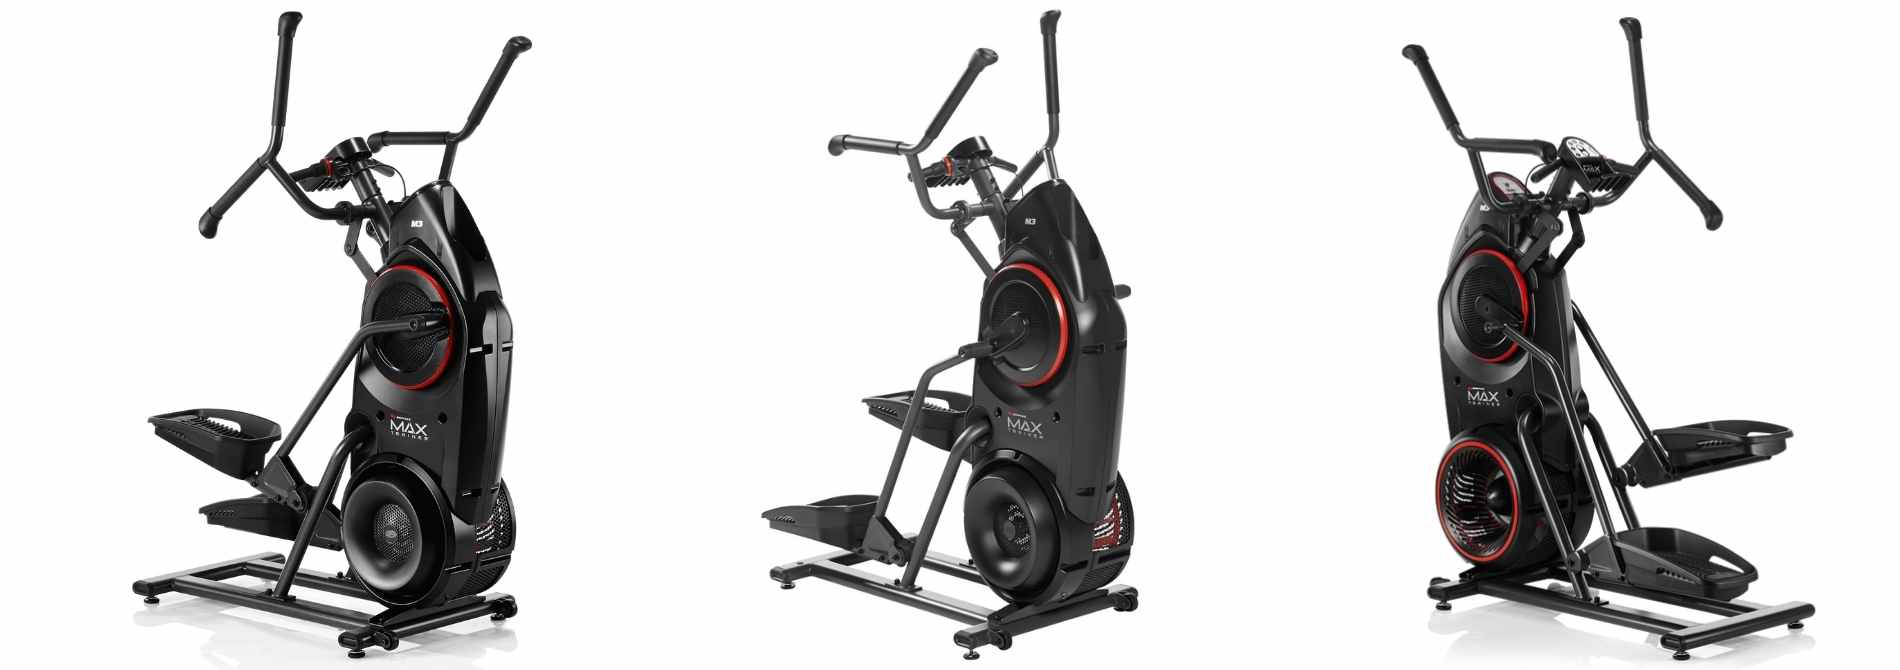 Bowflex Max Trainer 3 Overview